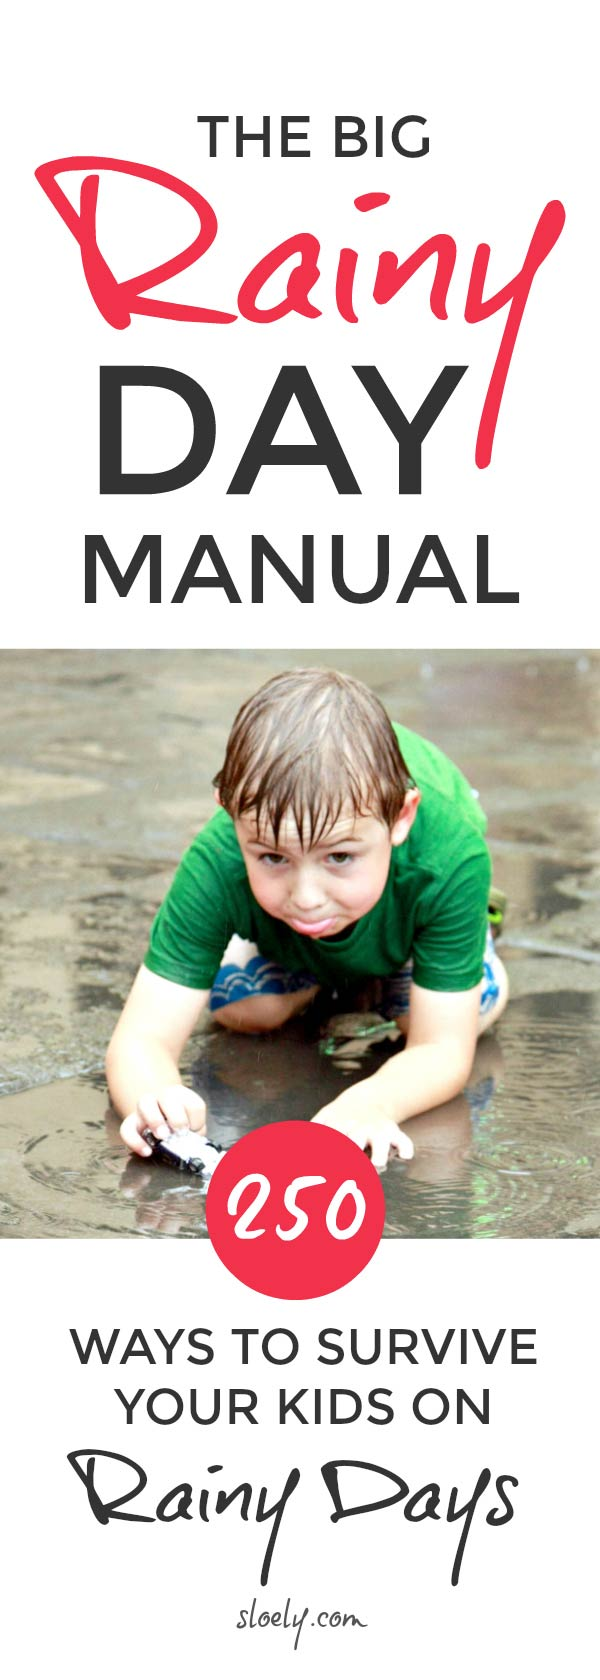 Rainy day activities for kids - a big list of things to do on a rainy day for boys and girls from toddlers and preschoolers to older teens. There's easy DIY fun scavenger hunts, crafts, games, projects, baking, art and science. Including cheap no mess ideas great for indoors and outdoors to burn off energy. Never be stuck by the nightmare parenting question of what to do on a rainy day again. #rainydays #rainydayactivities #kidsactivities #indooractivities #indoorgames #kidsgames #kidscrafts #raindayideas